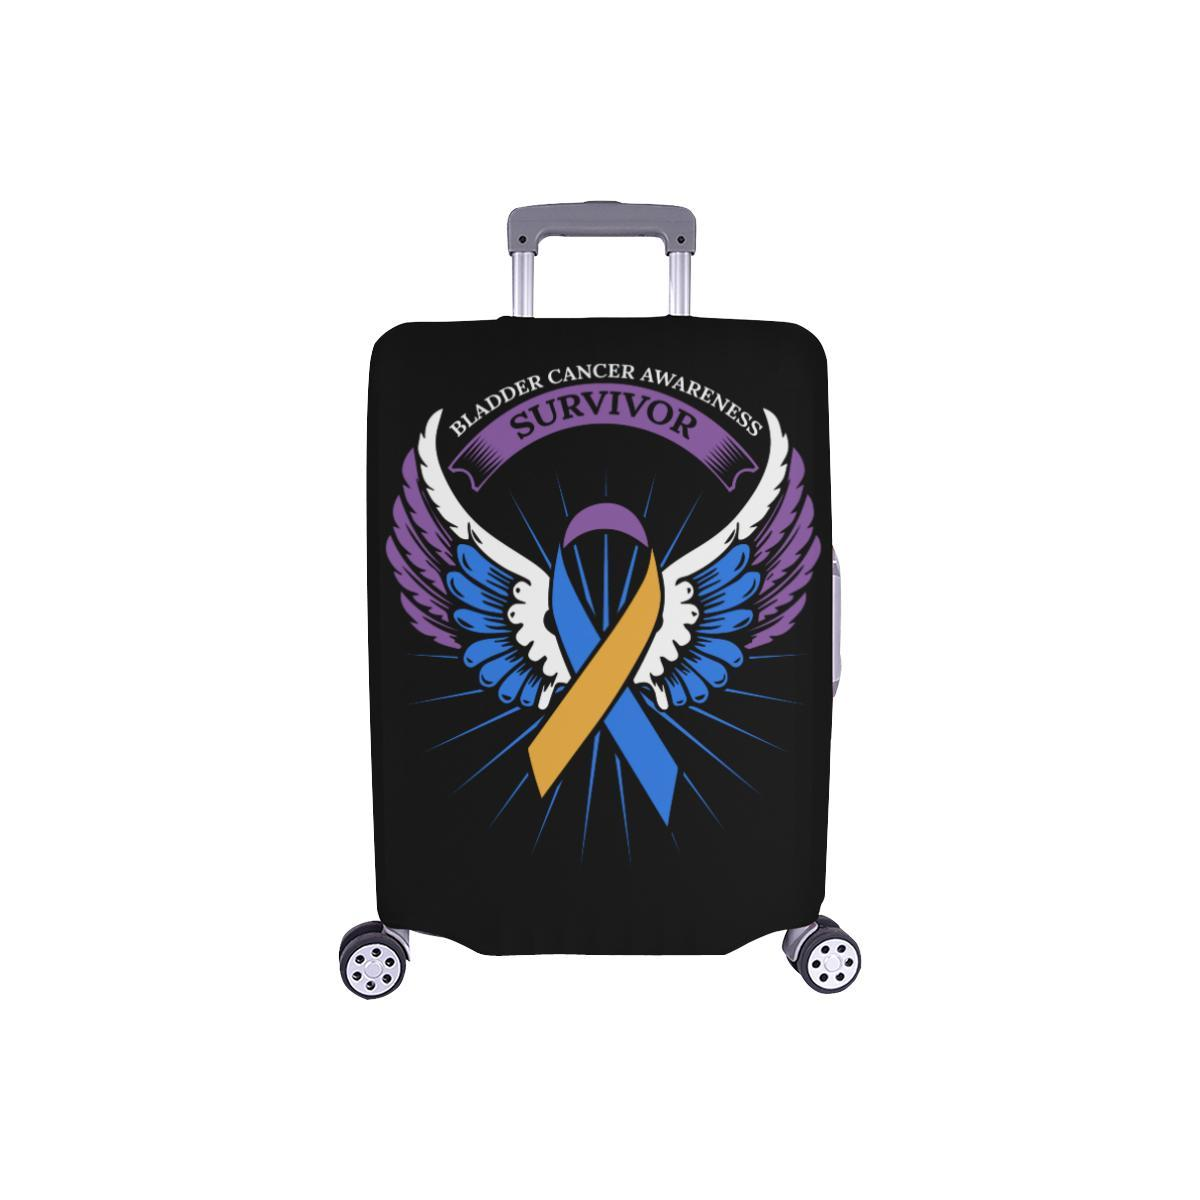 Bladder Cancer Survivor Angel Wings Travel Luggage Cover Suitcase Protector-S-Black-JoyHip.Com